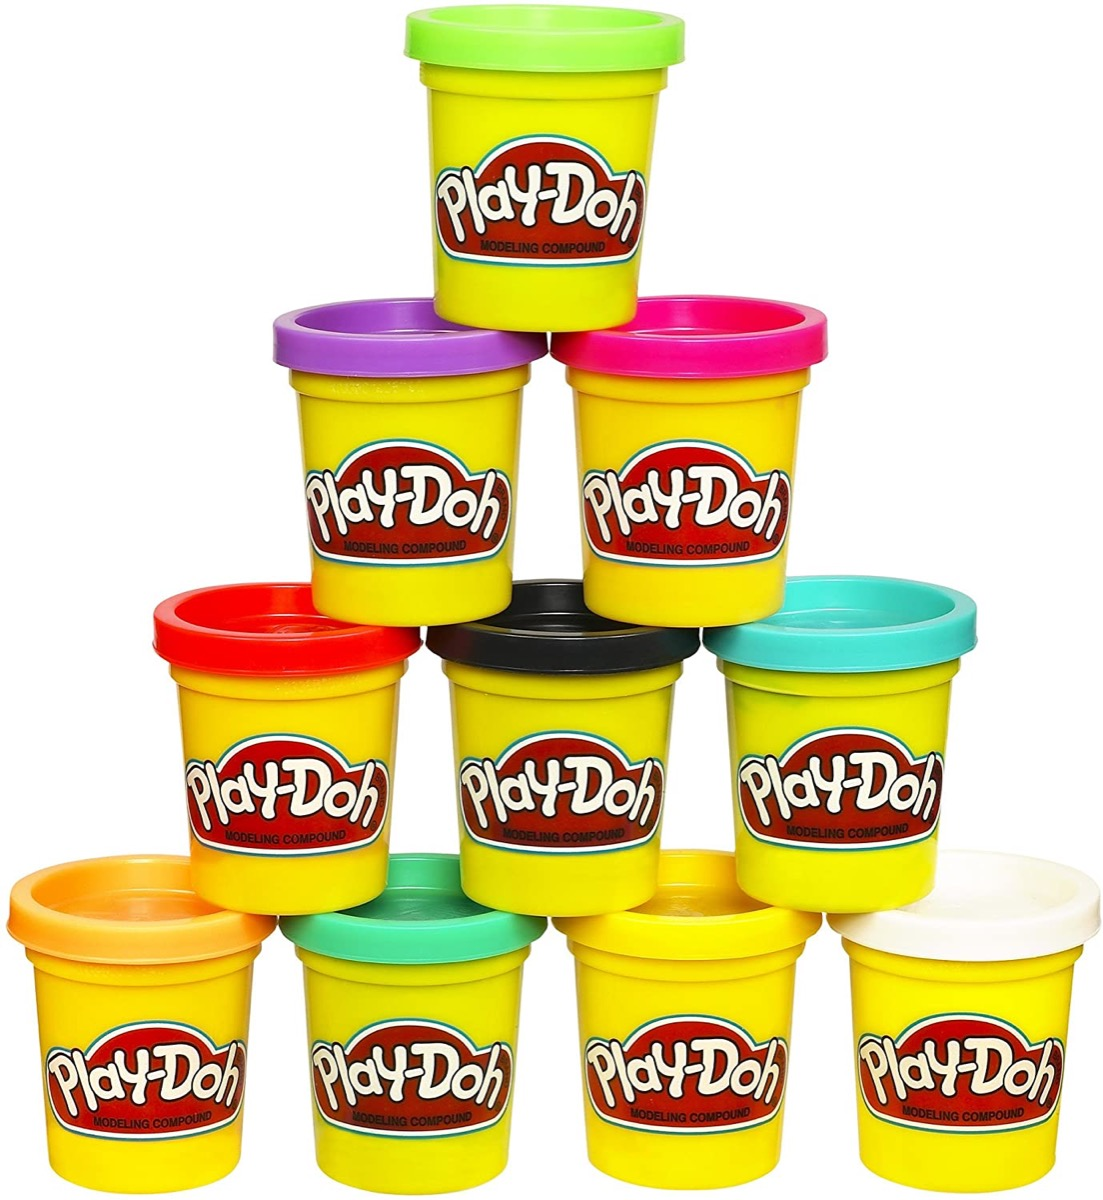 10-pack of play-doh stacked in pyramid